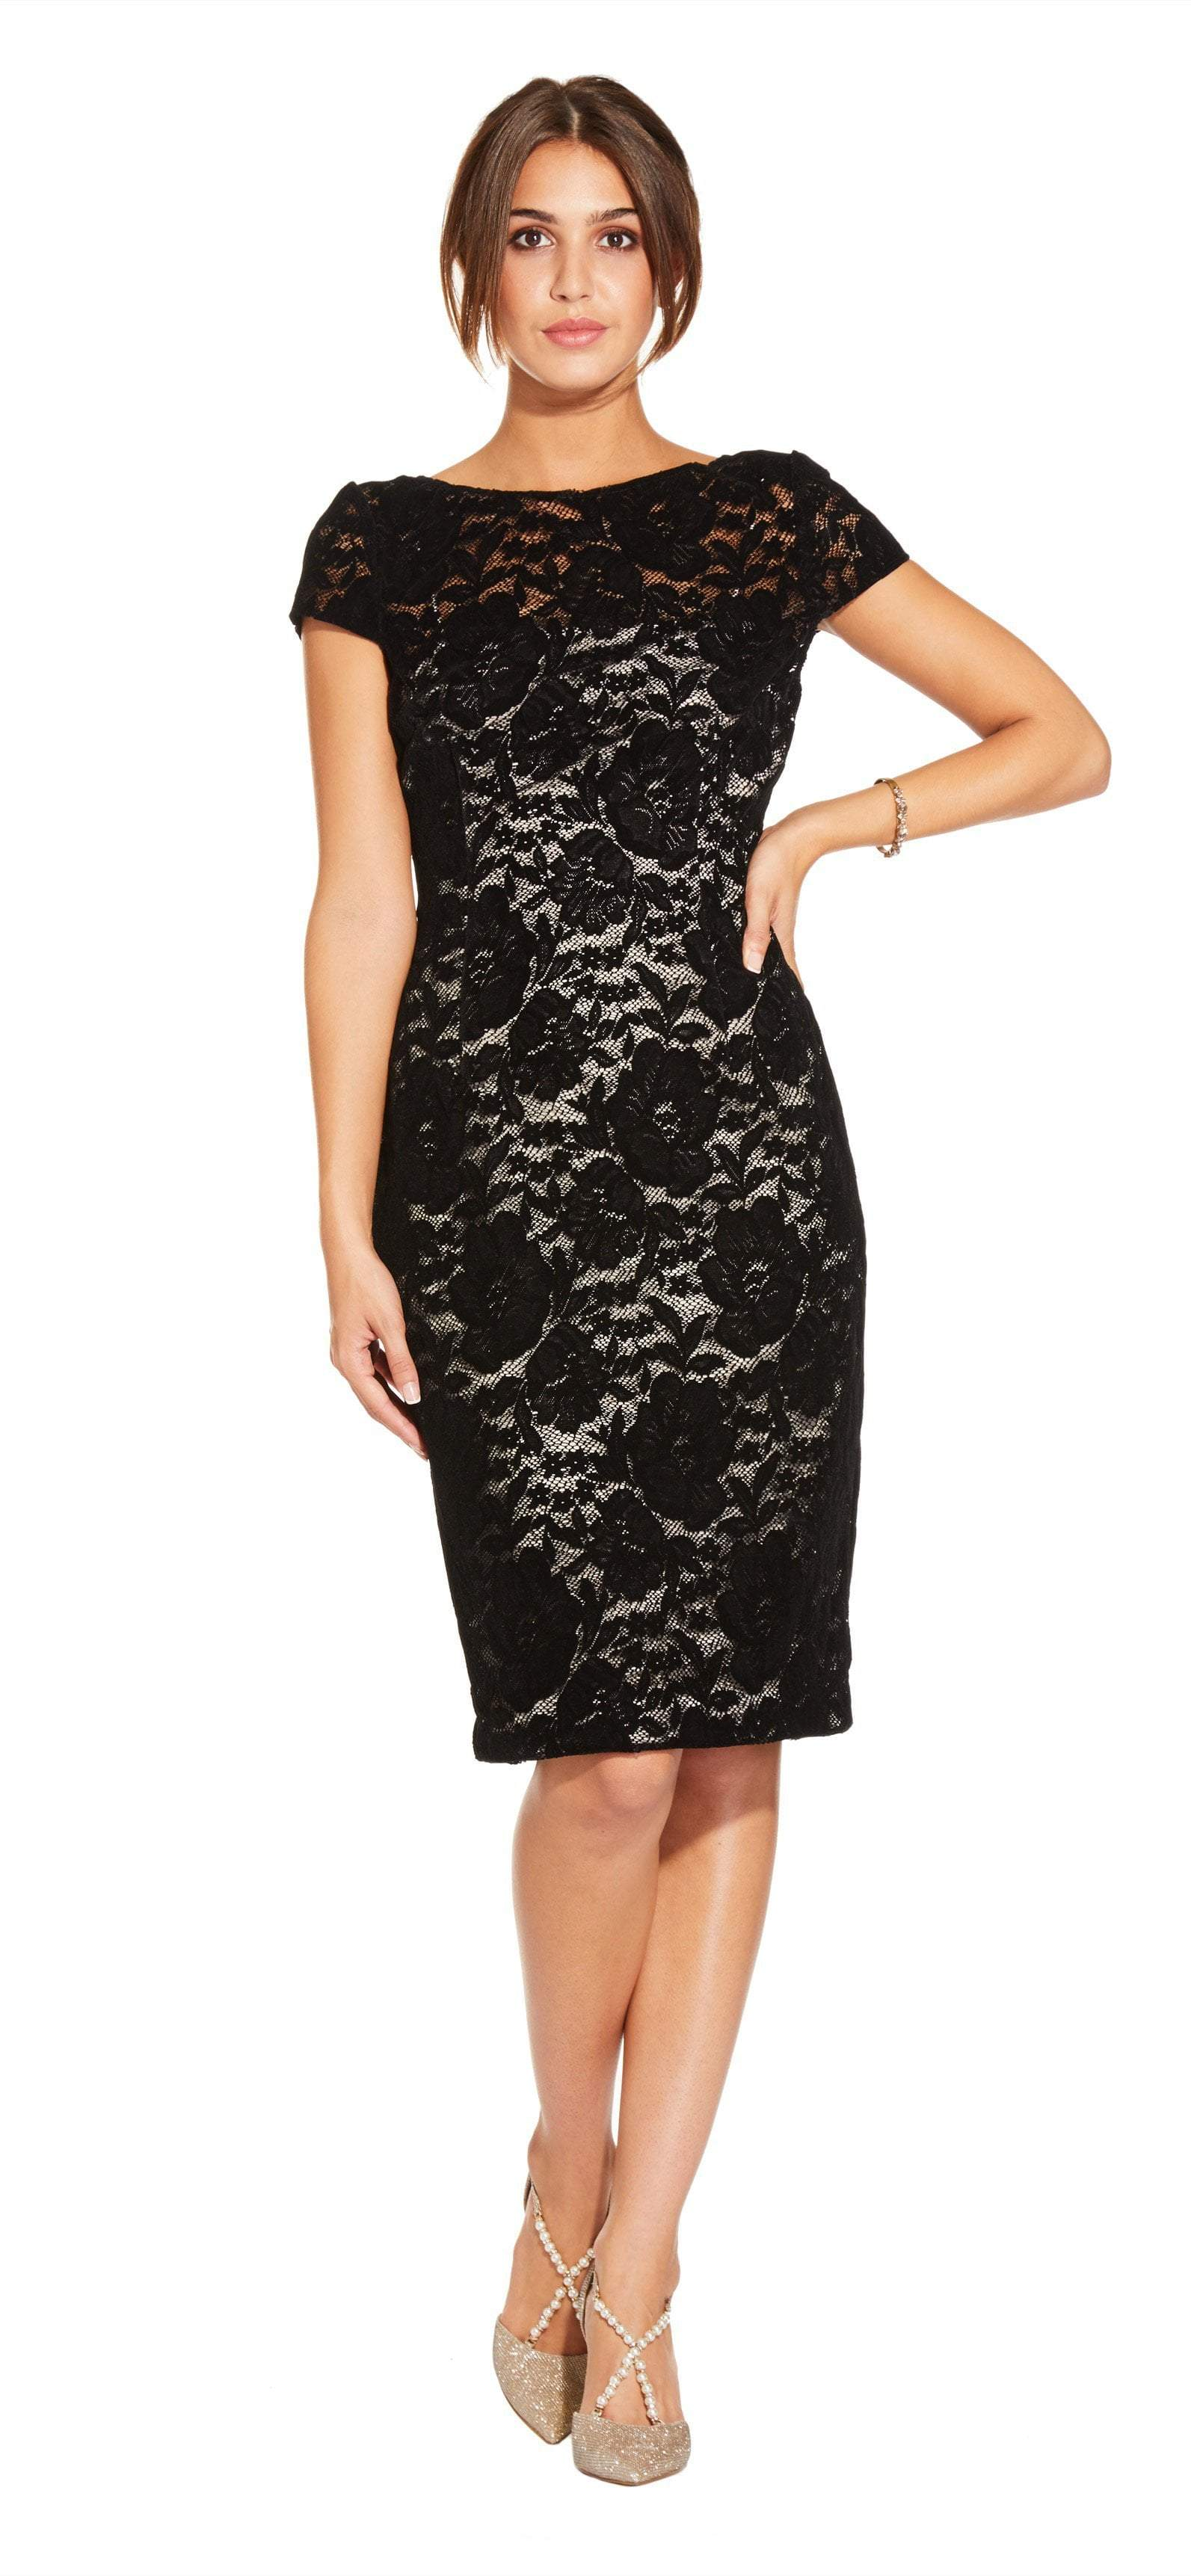 Adrianna Papell - AP1E204098 Floral Lace Cap Sleeve Sheath Dress In Black and Neutral